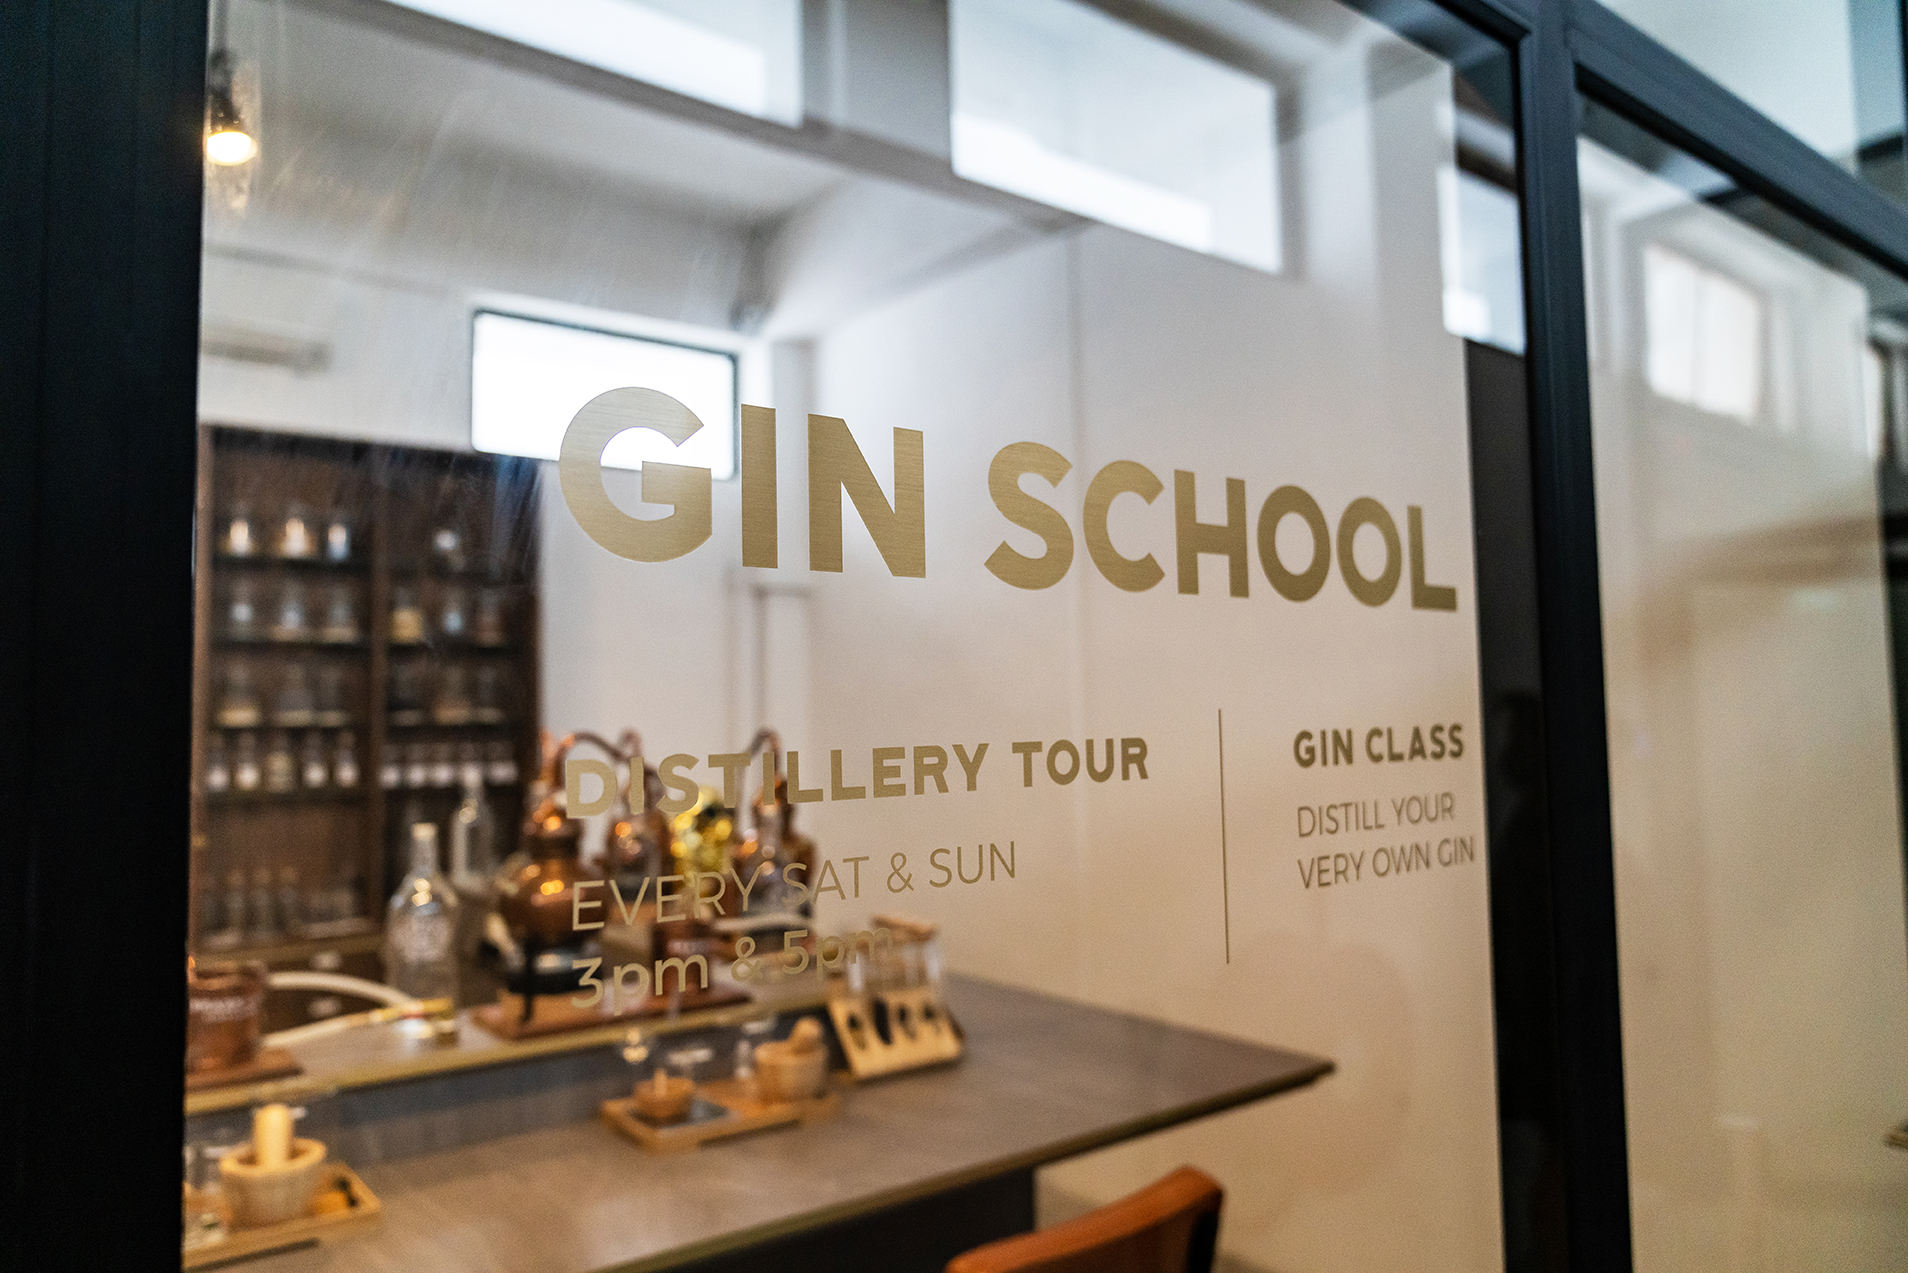 Singapore's first and only gin school